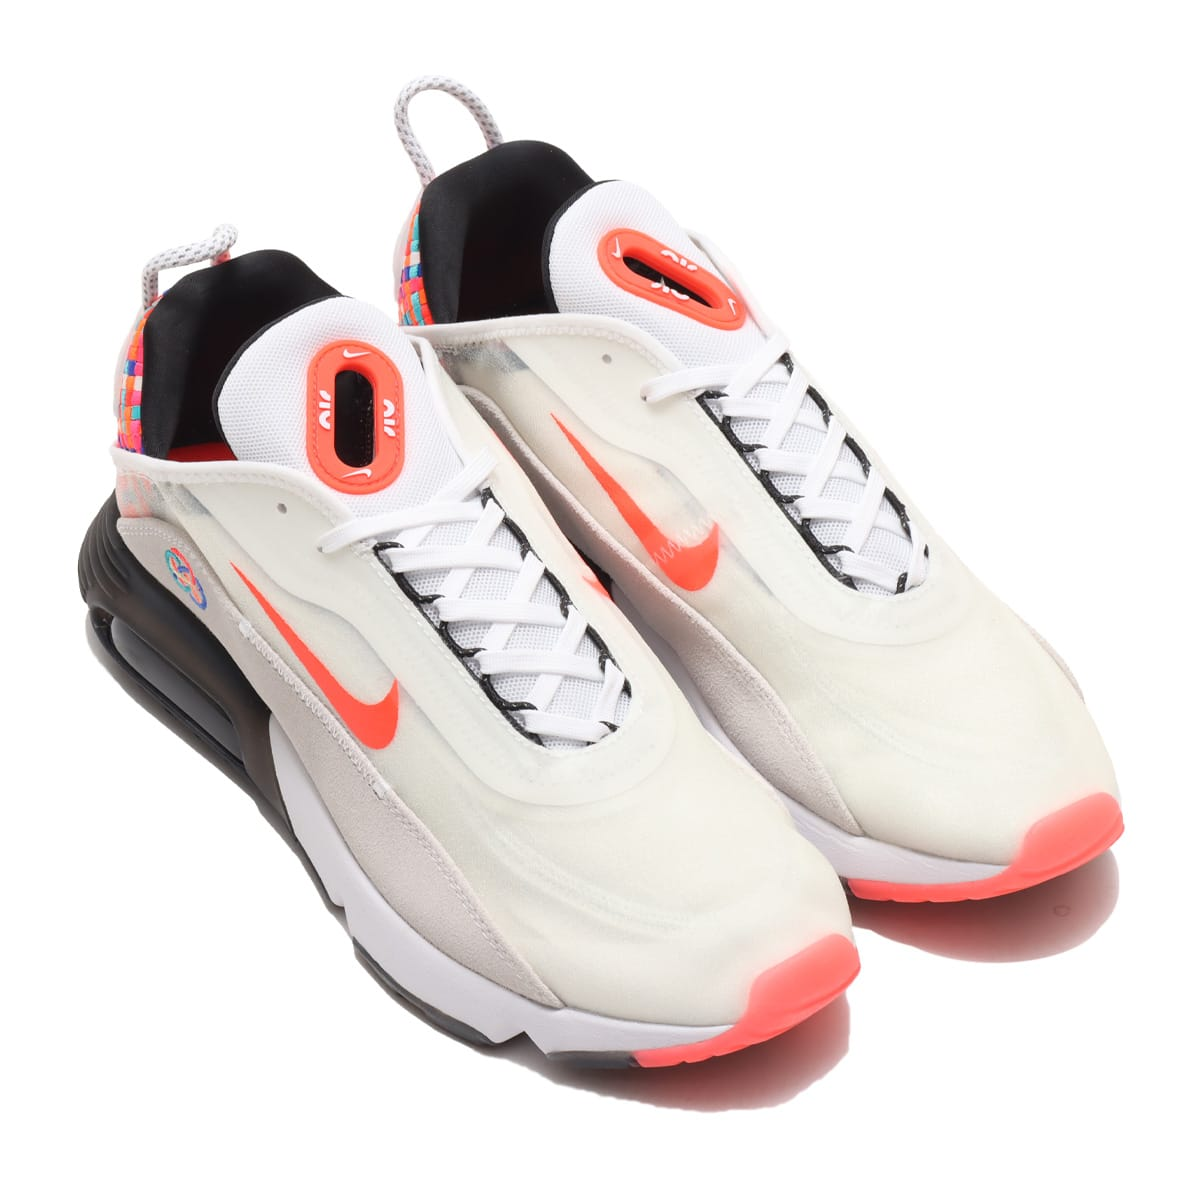 NIKE AIR MAX 2090 WHITE/BRIGHT CRIMSON-SUMMIT WHITE 21SP-I_photo_large